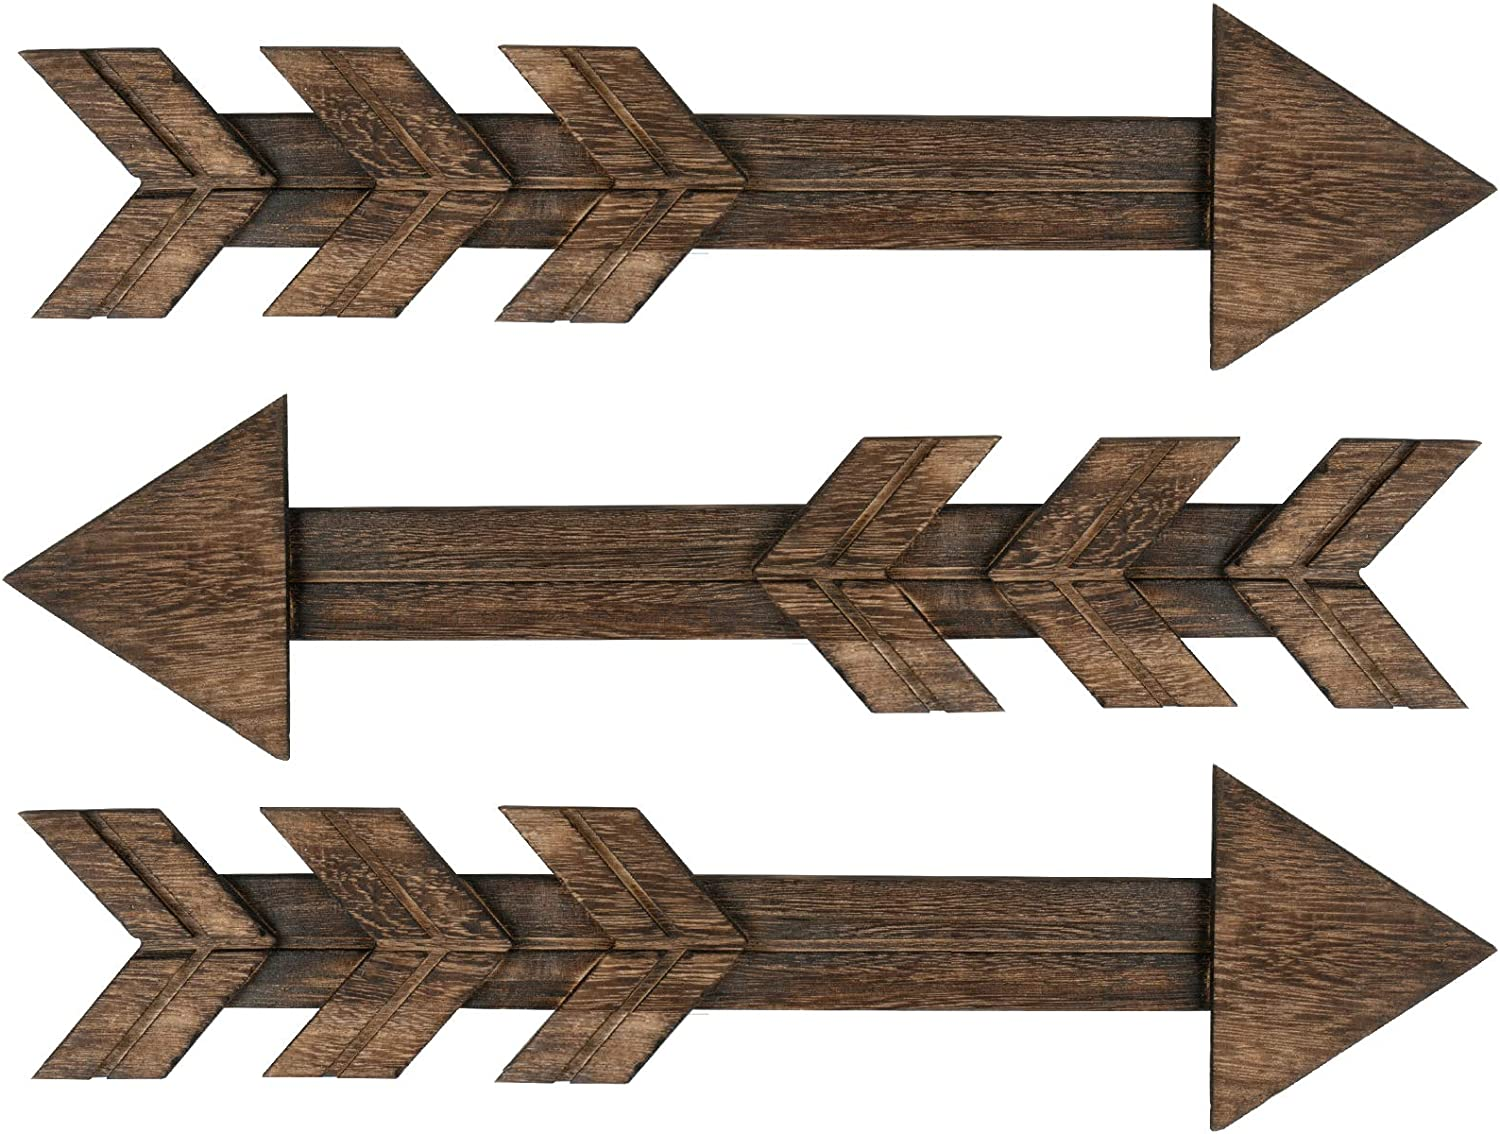 Kingbuy Rustic Wood Arrow Sign Wall Decor for Gallery Farmhouse Home Bedroom or Wedding Wall Mount, Set of 3